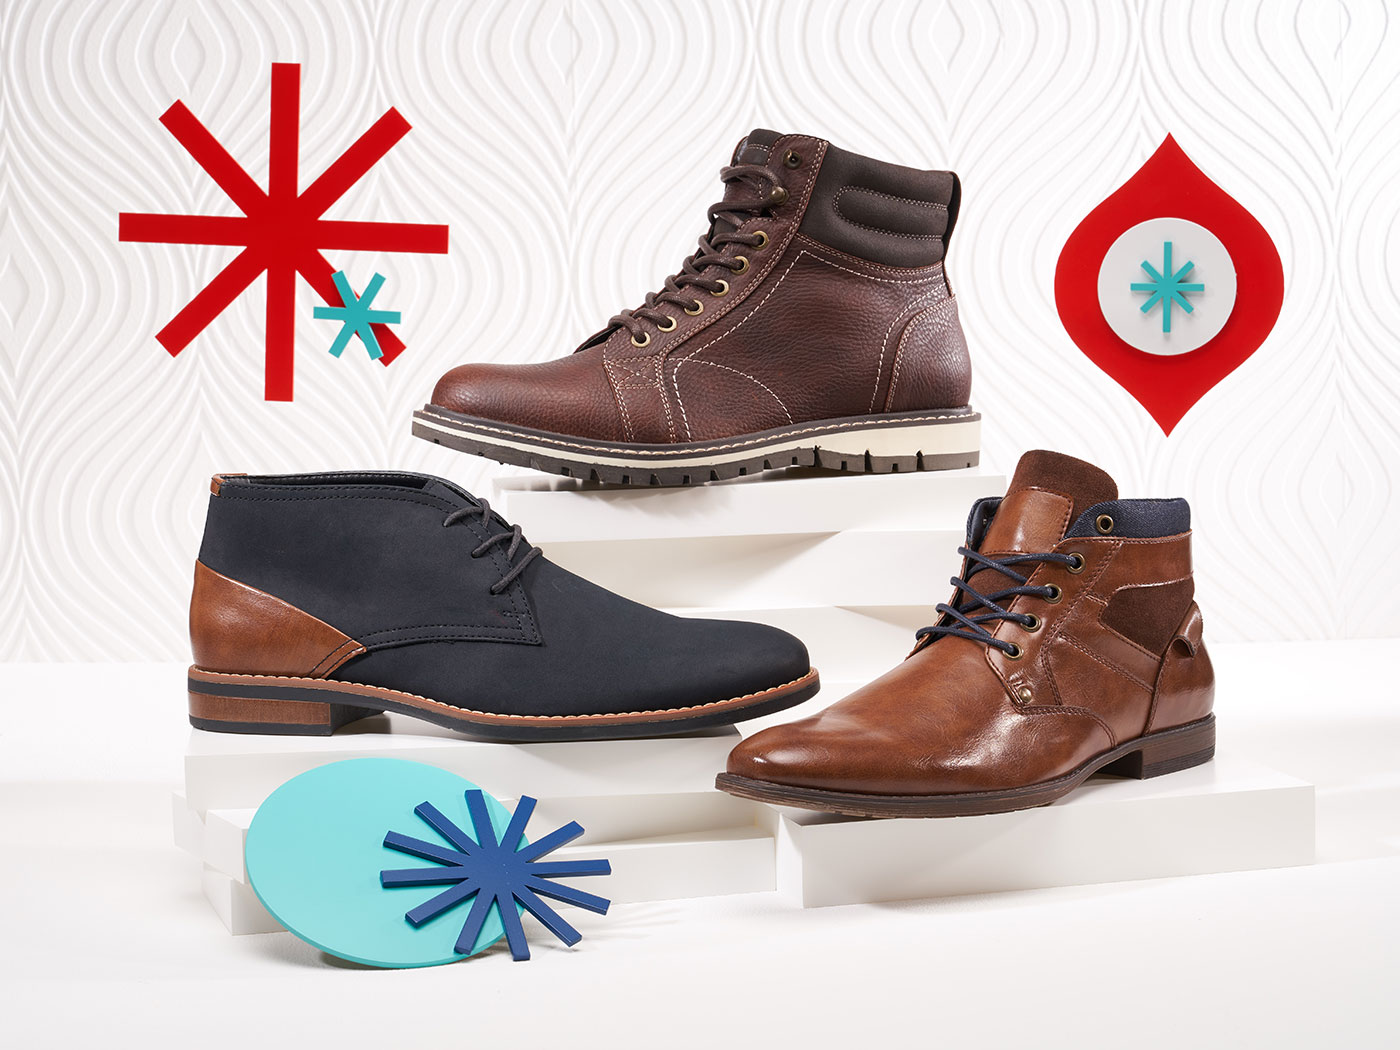 assorted stylish mens boots